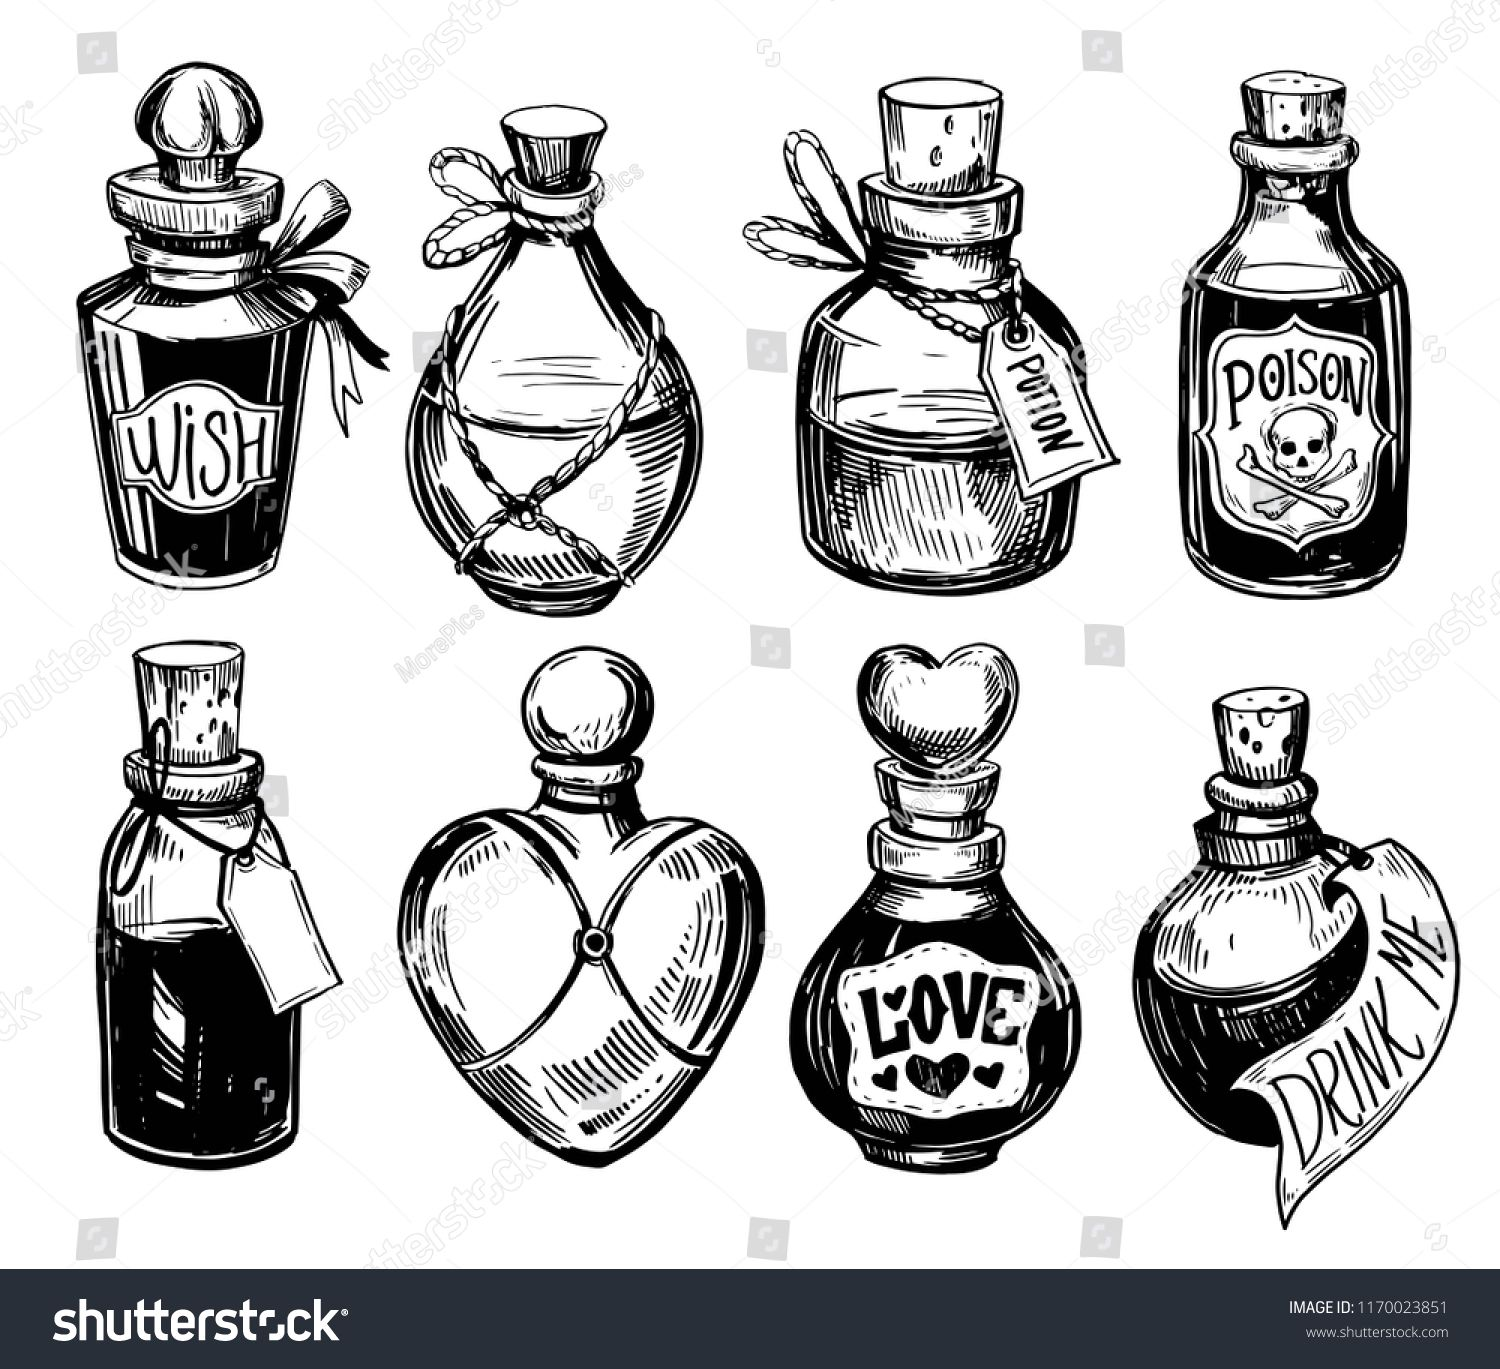 Bottles Potions Poison Love Potion Hand Stock Vect